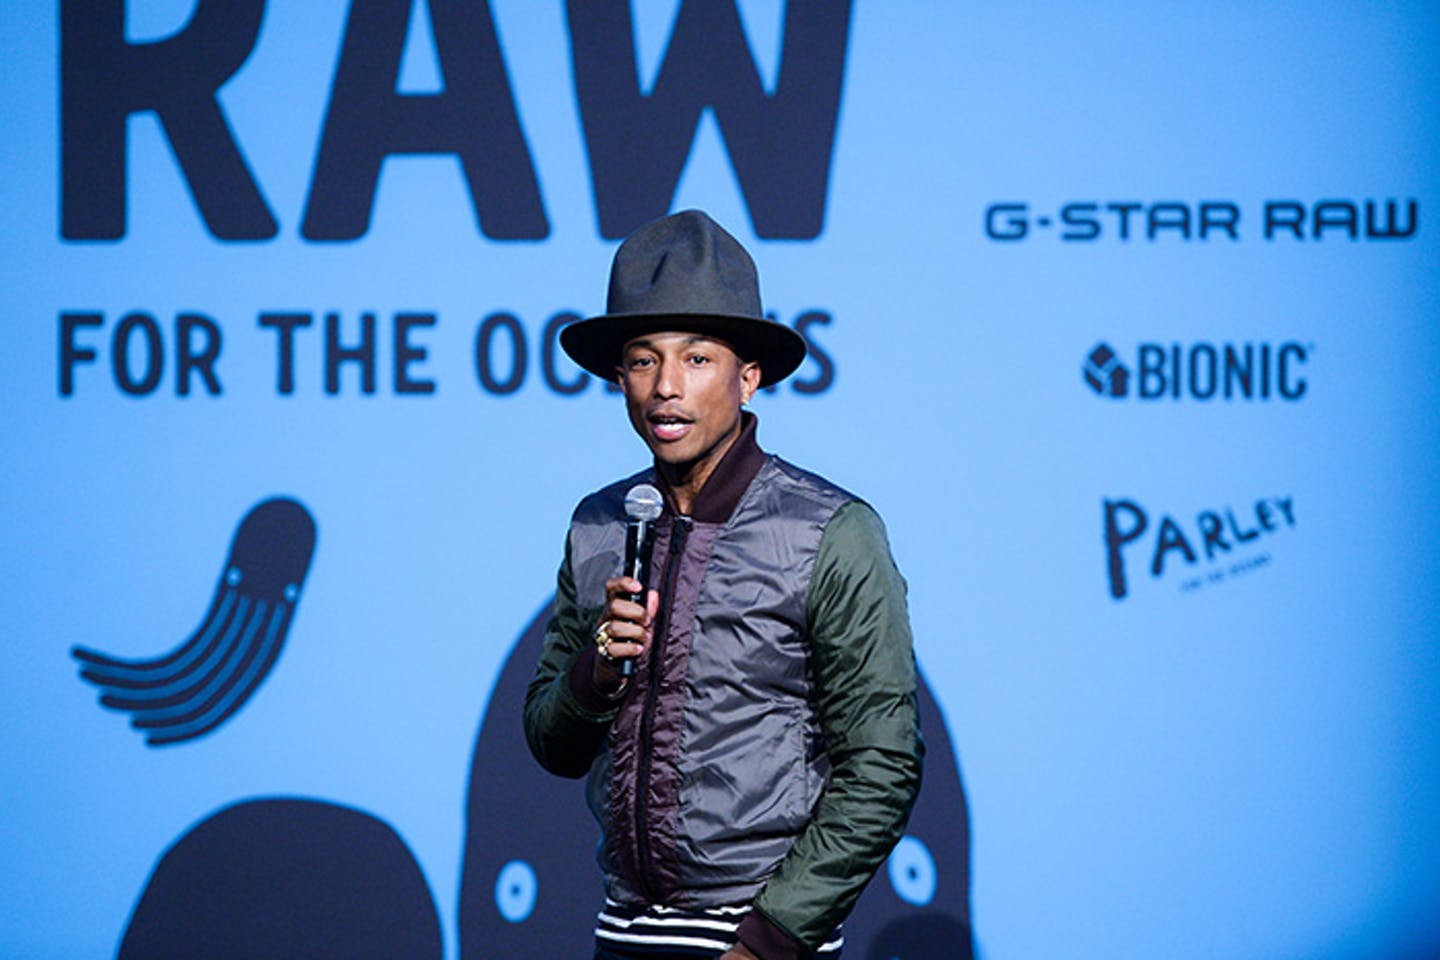 Pharrell Williams at the Raw for Oceans launch